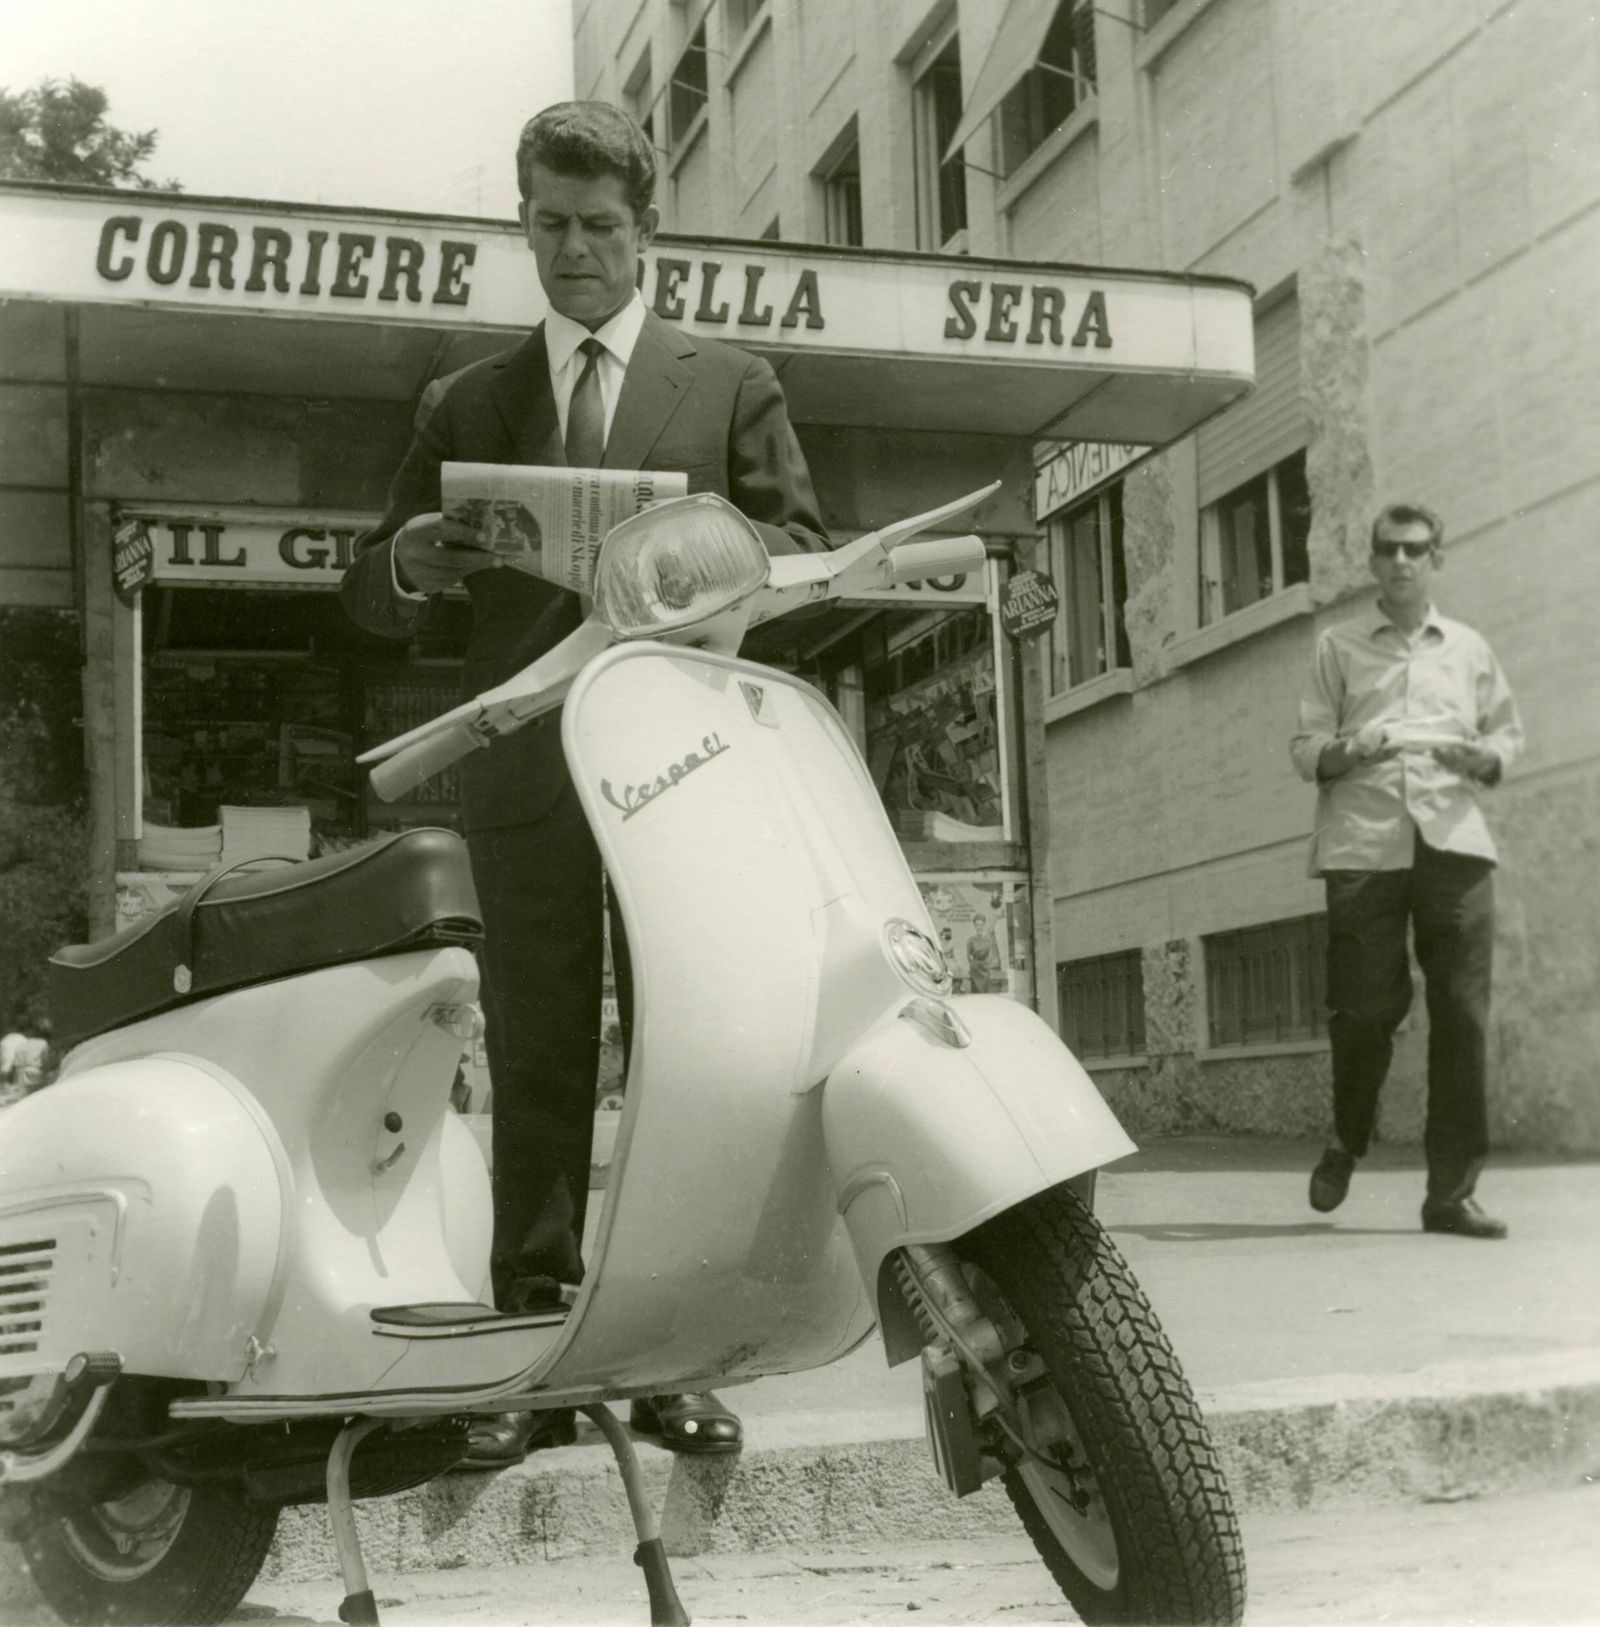 Advertising Piaggio Vespa A man buys a newspaper and approaching a Vespa Rome Italy x09304x